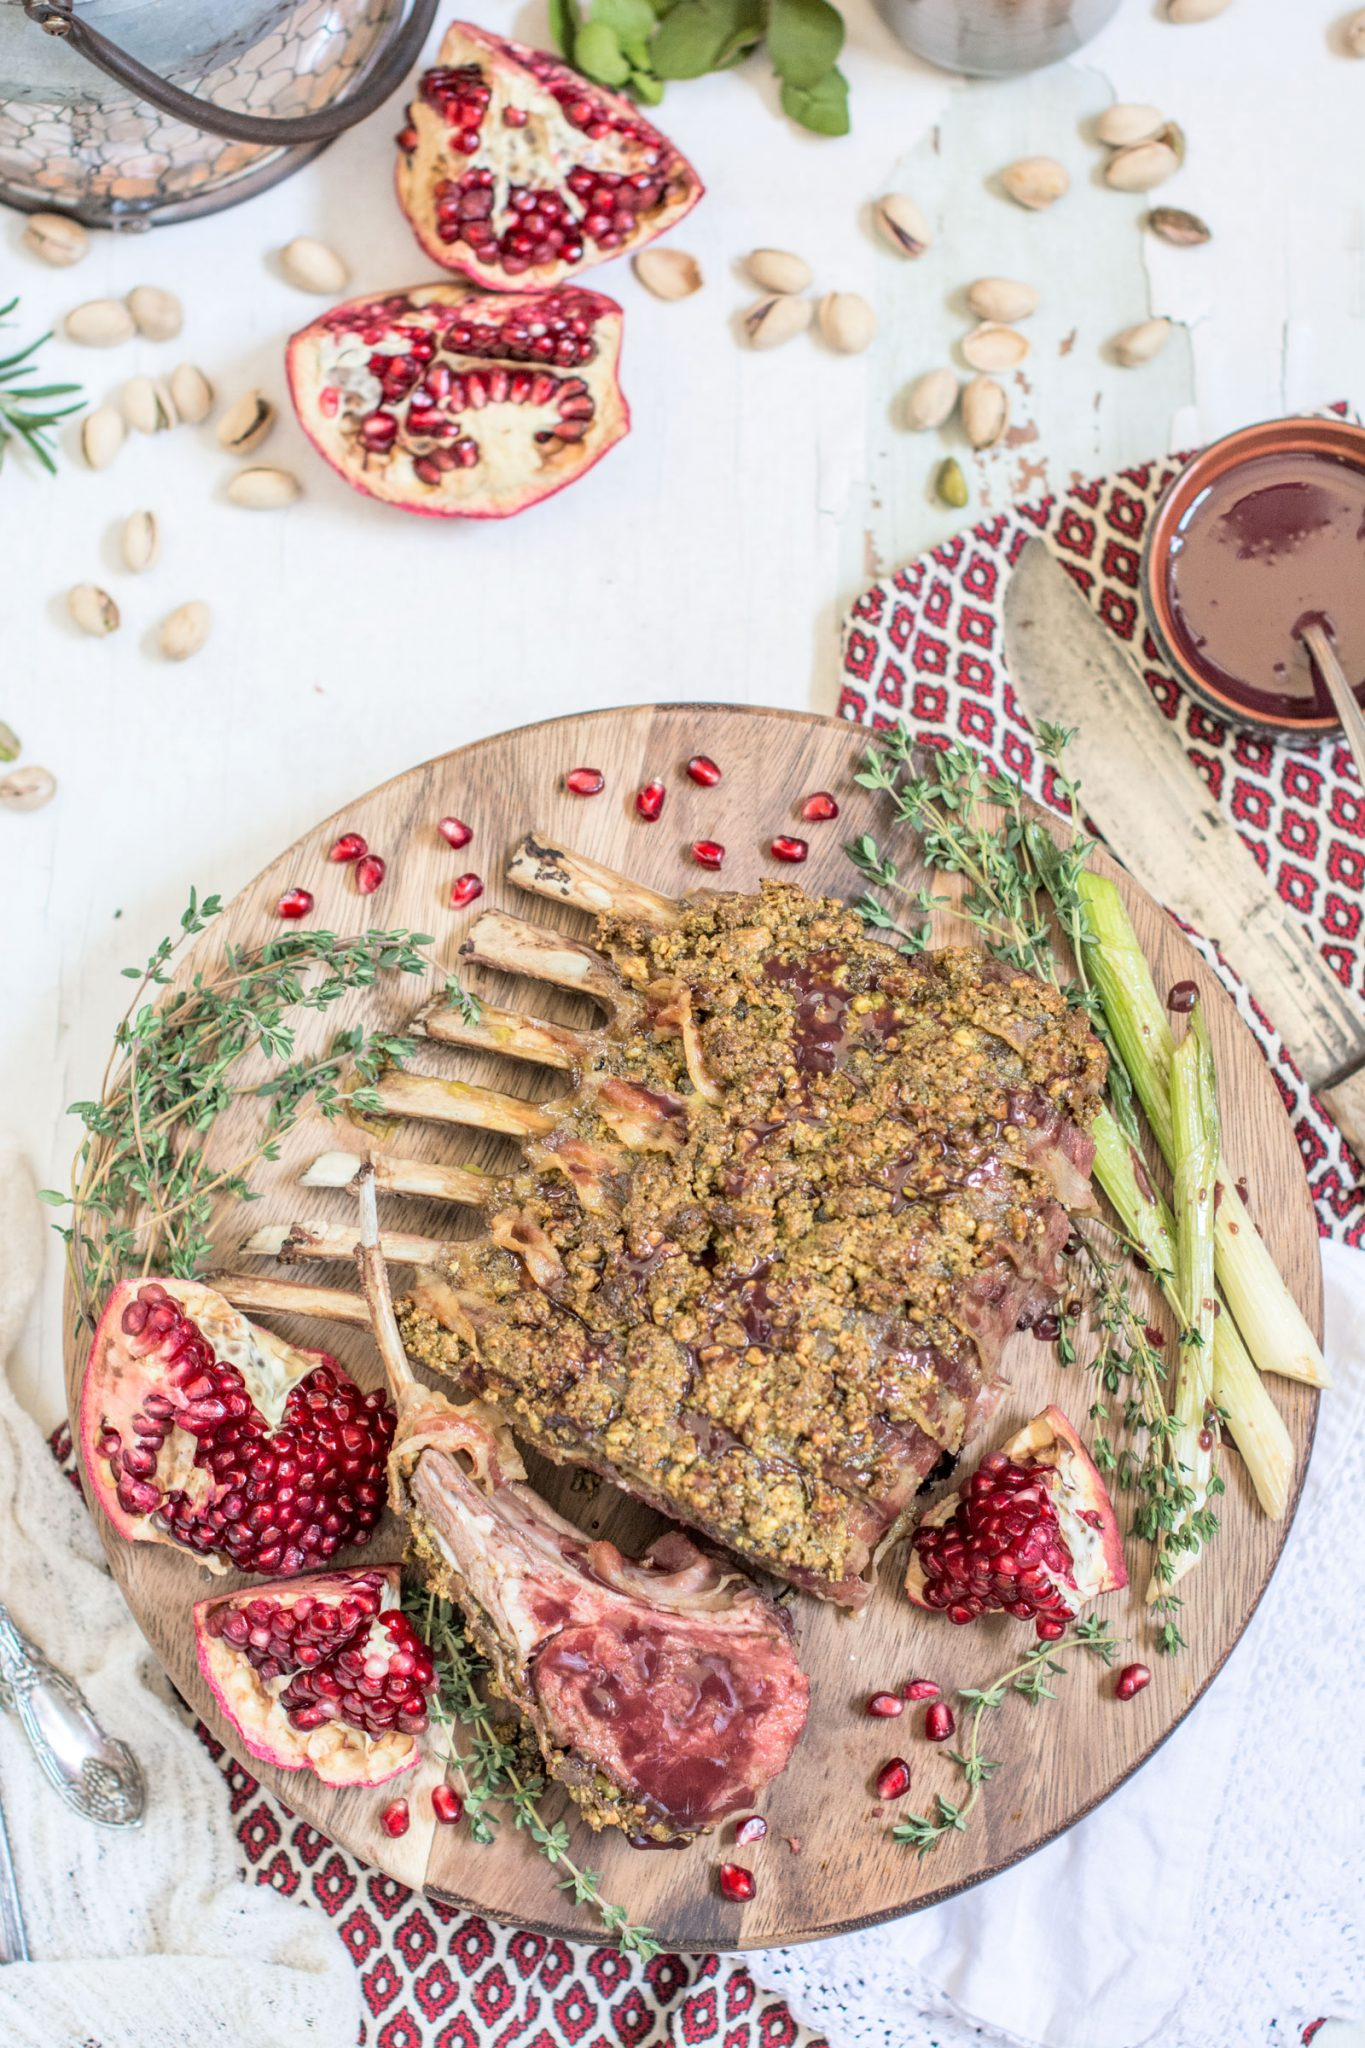 Pancetta and Pistachio Crusted Rack of Lamb